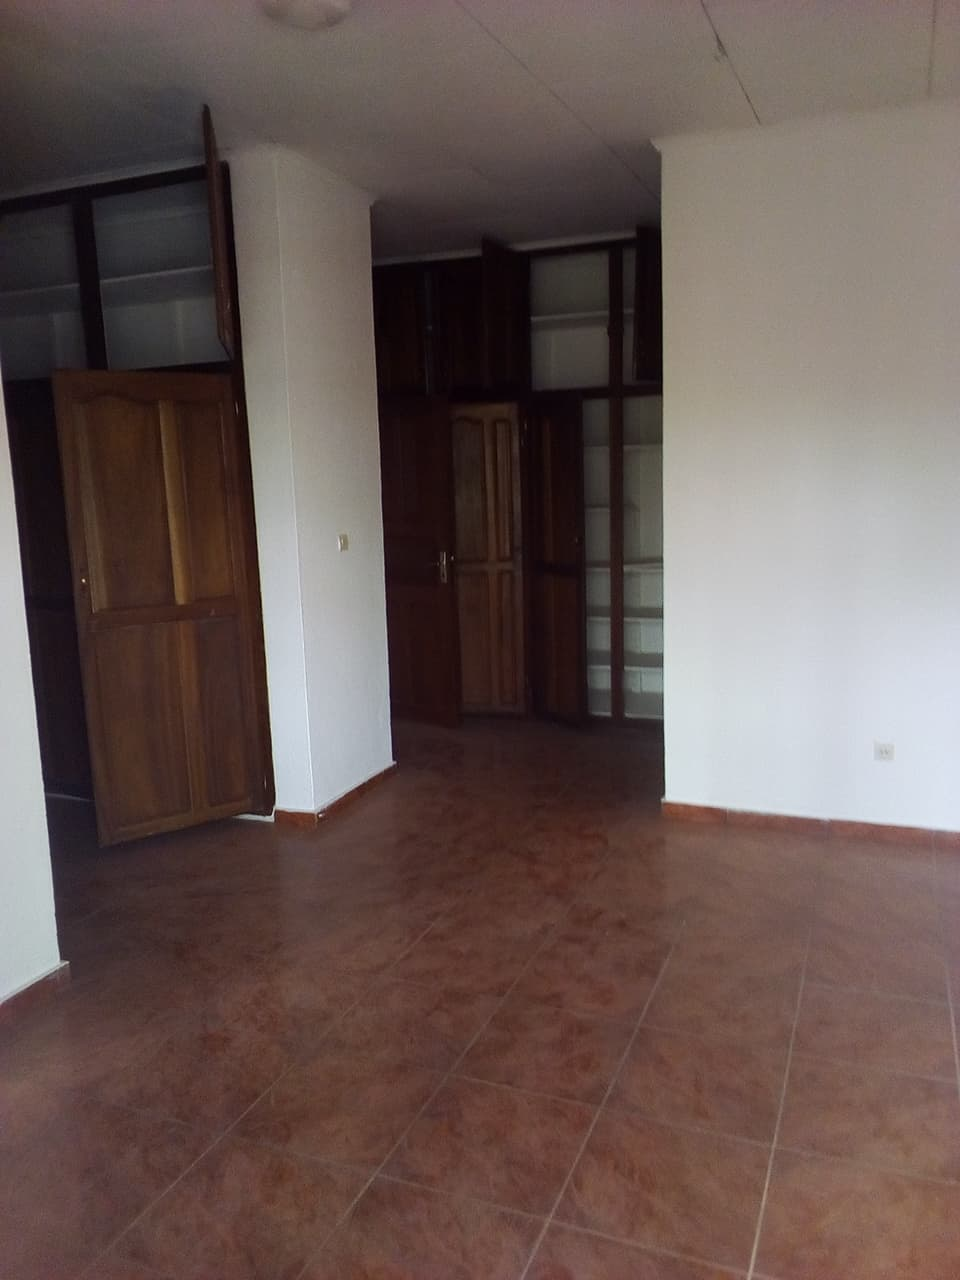 Office to rent at Yaoundé, Bastos, ambassade de chine - 1000 m2 - 1 800 000 FCFA